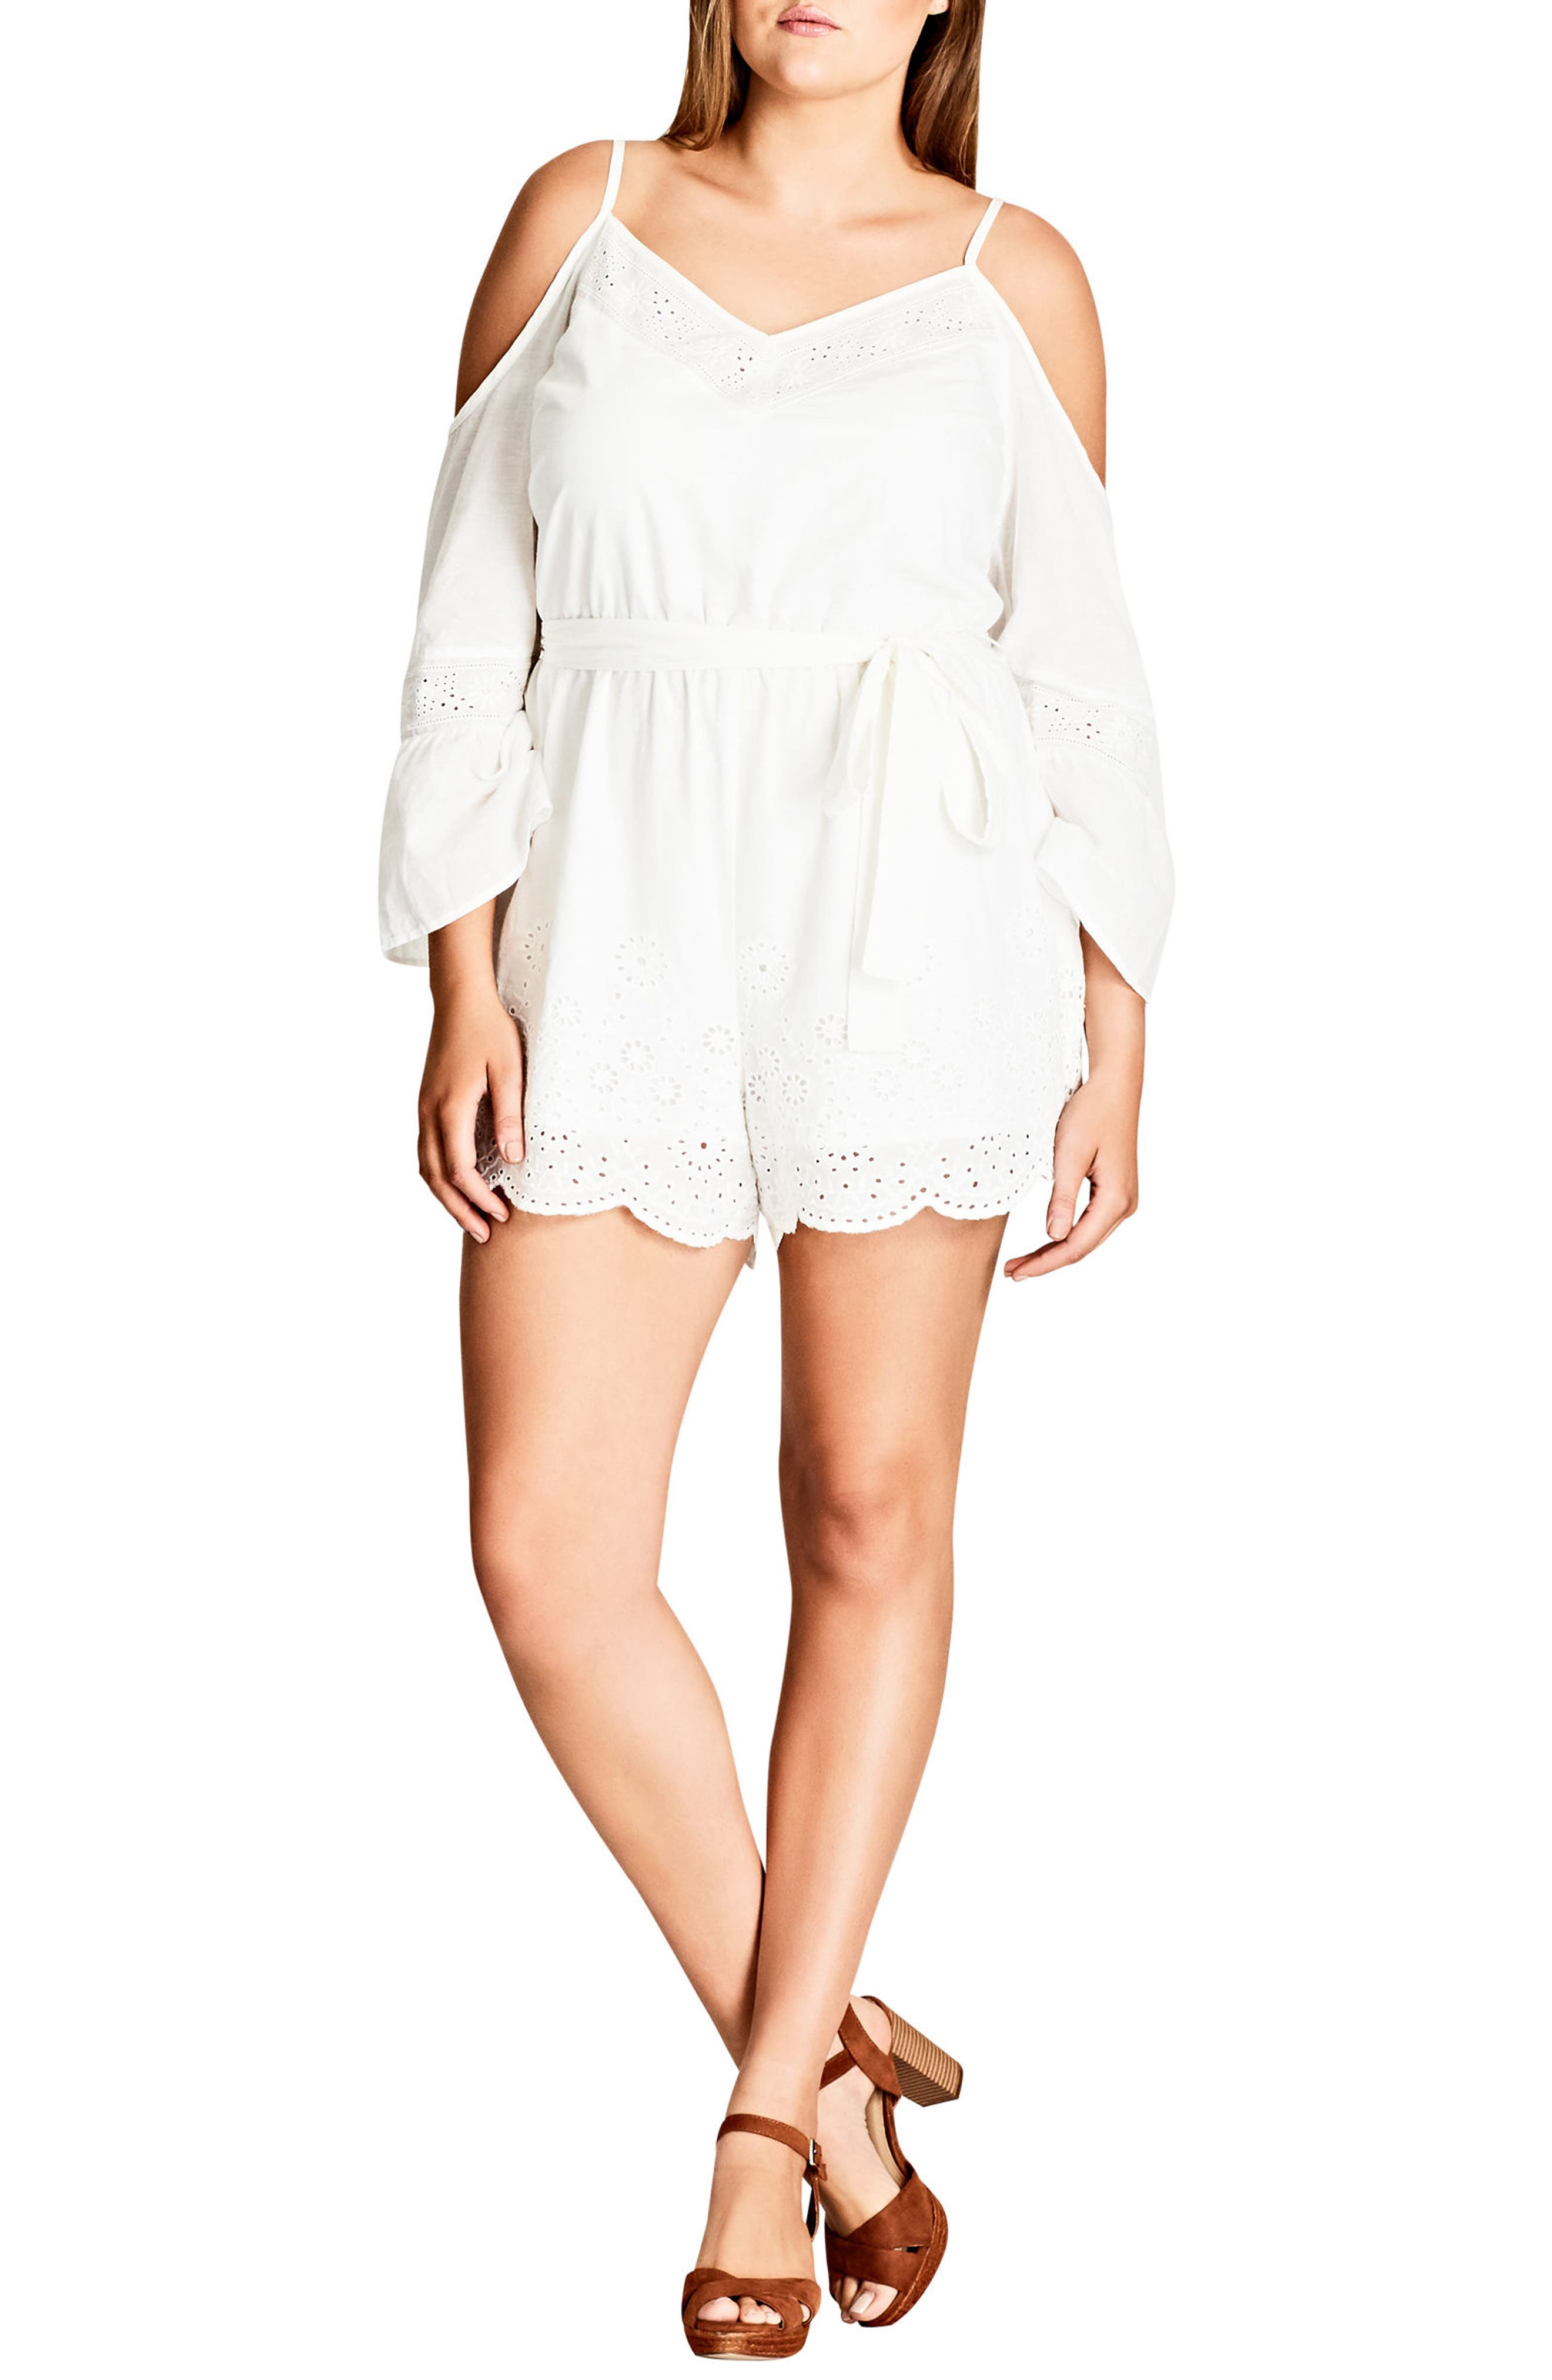 City Chic Innocence Cotton Off the Shoulder Romper (Plus Size)